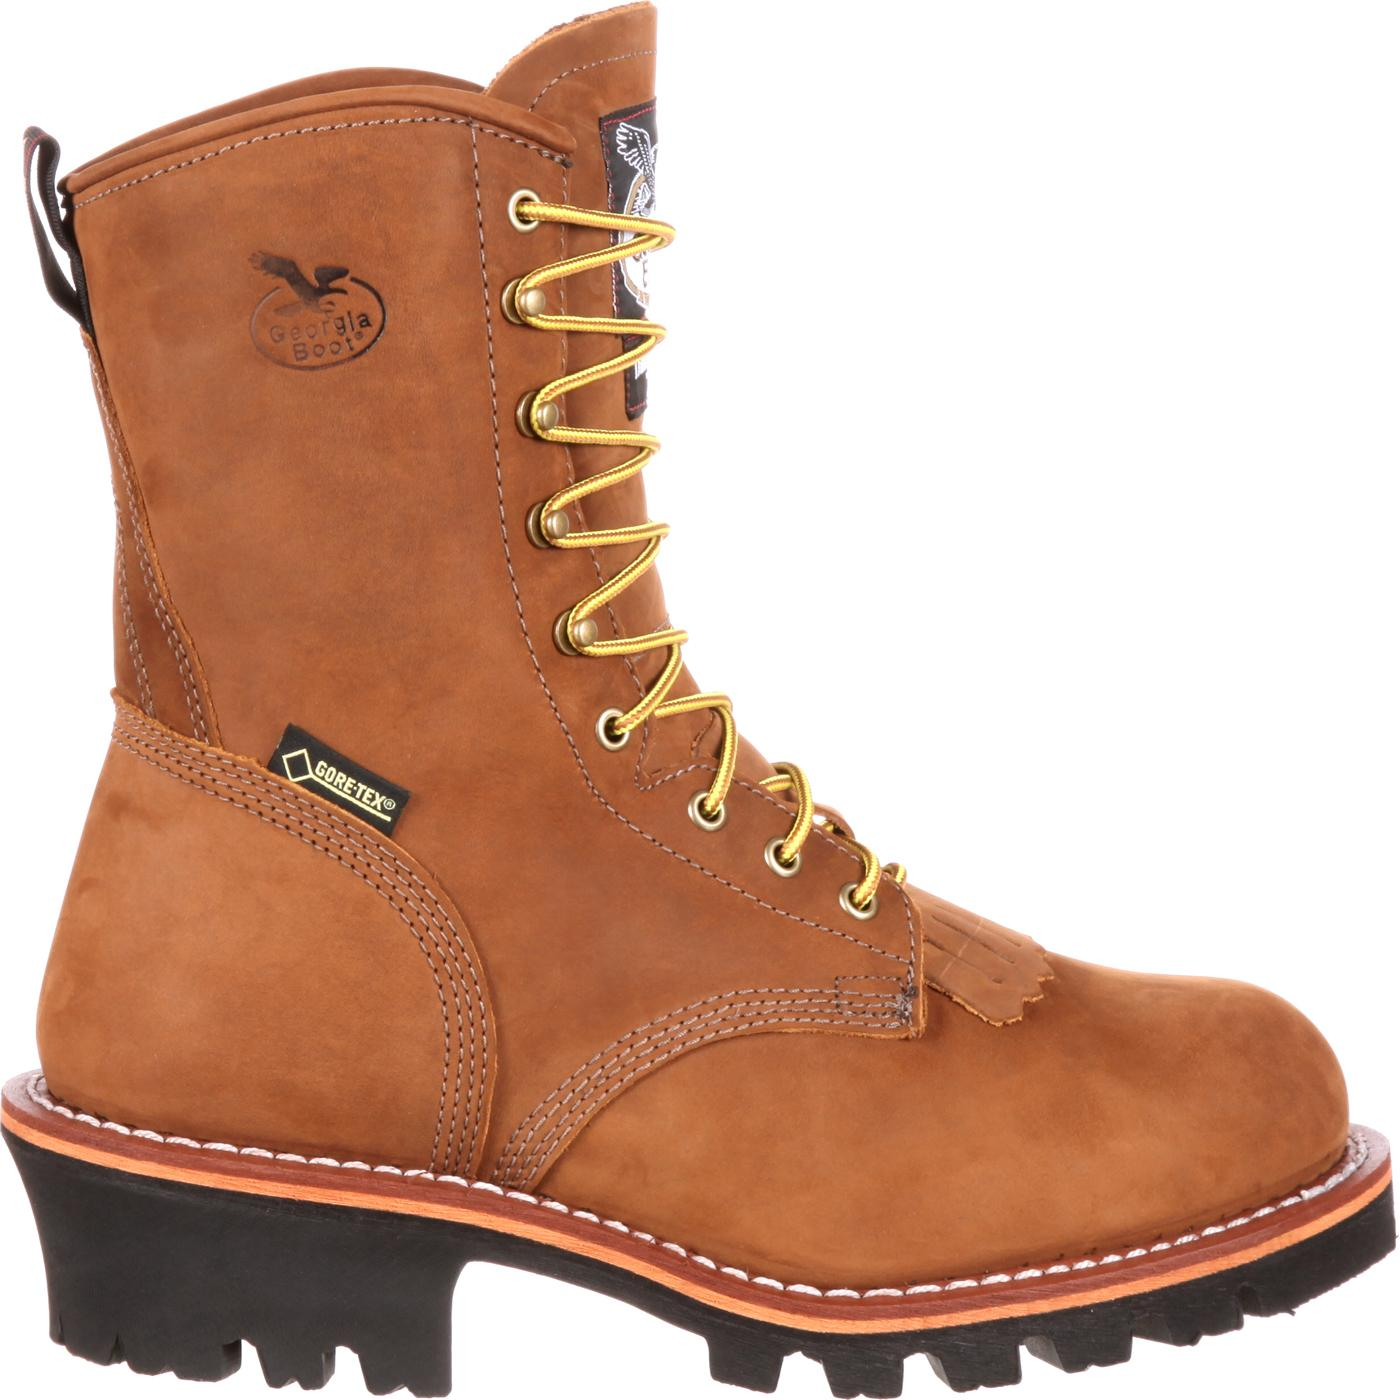 Georgia Logger Insulated Gore Tex 174 Steel Toe Work Boots